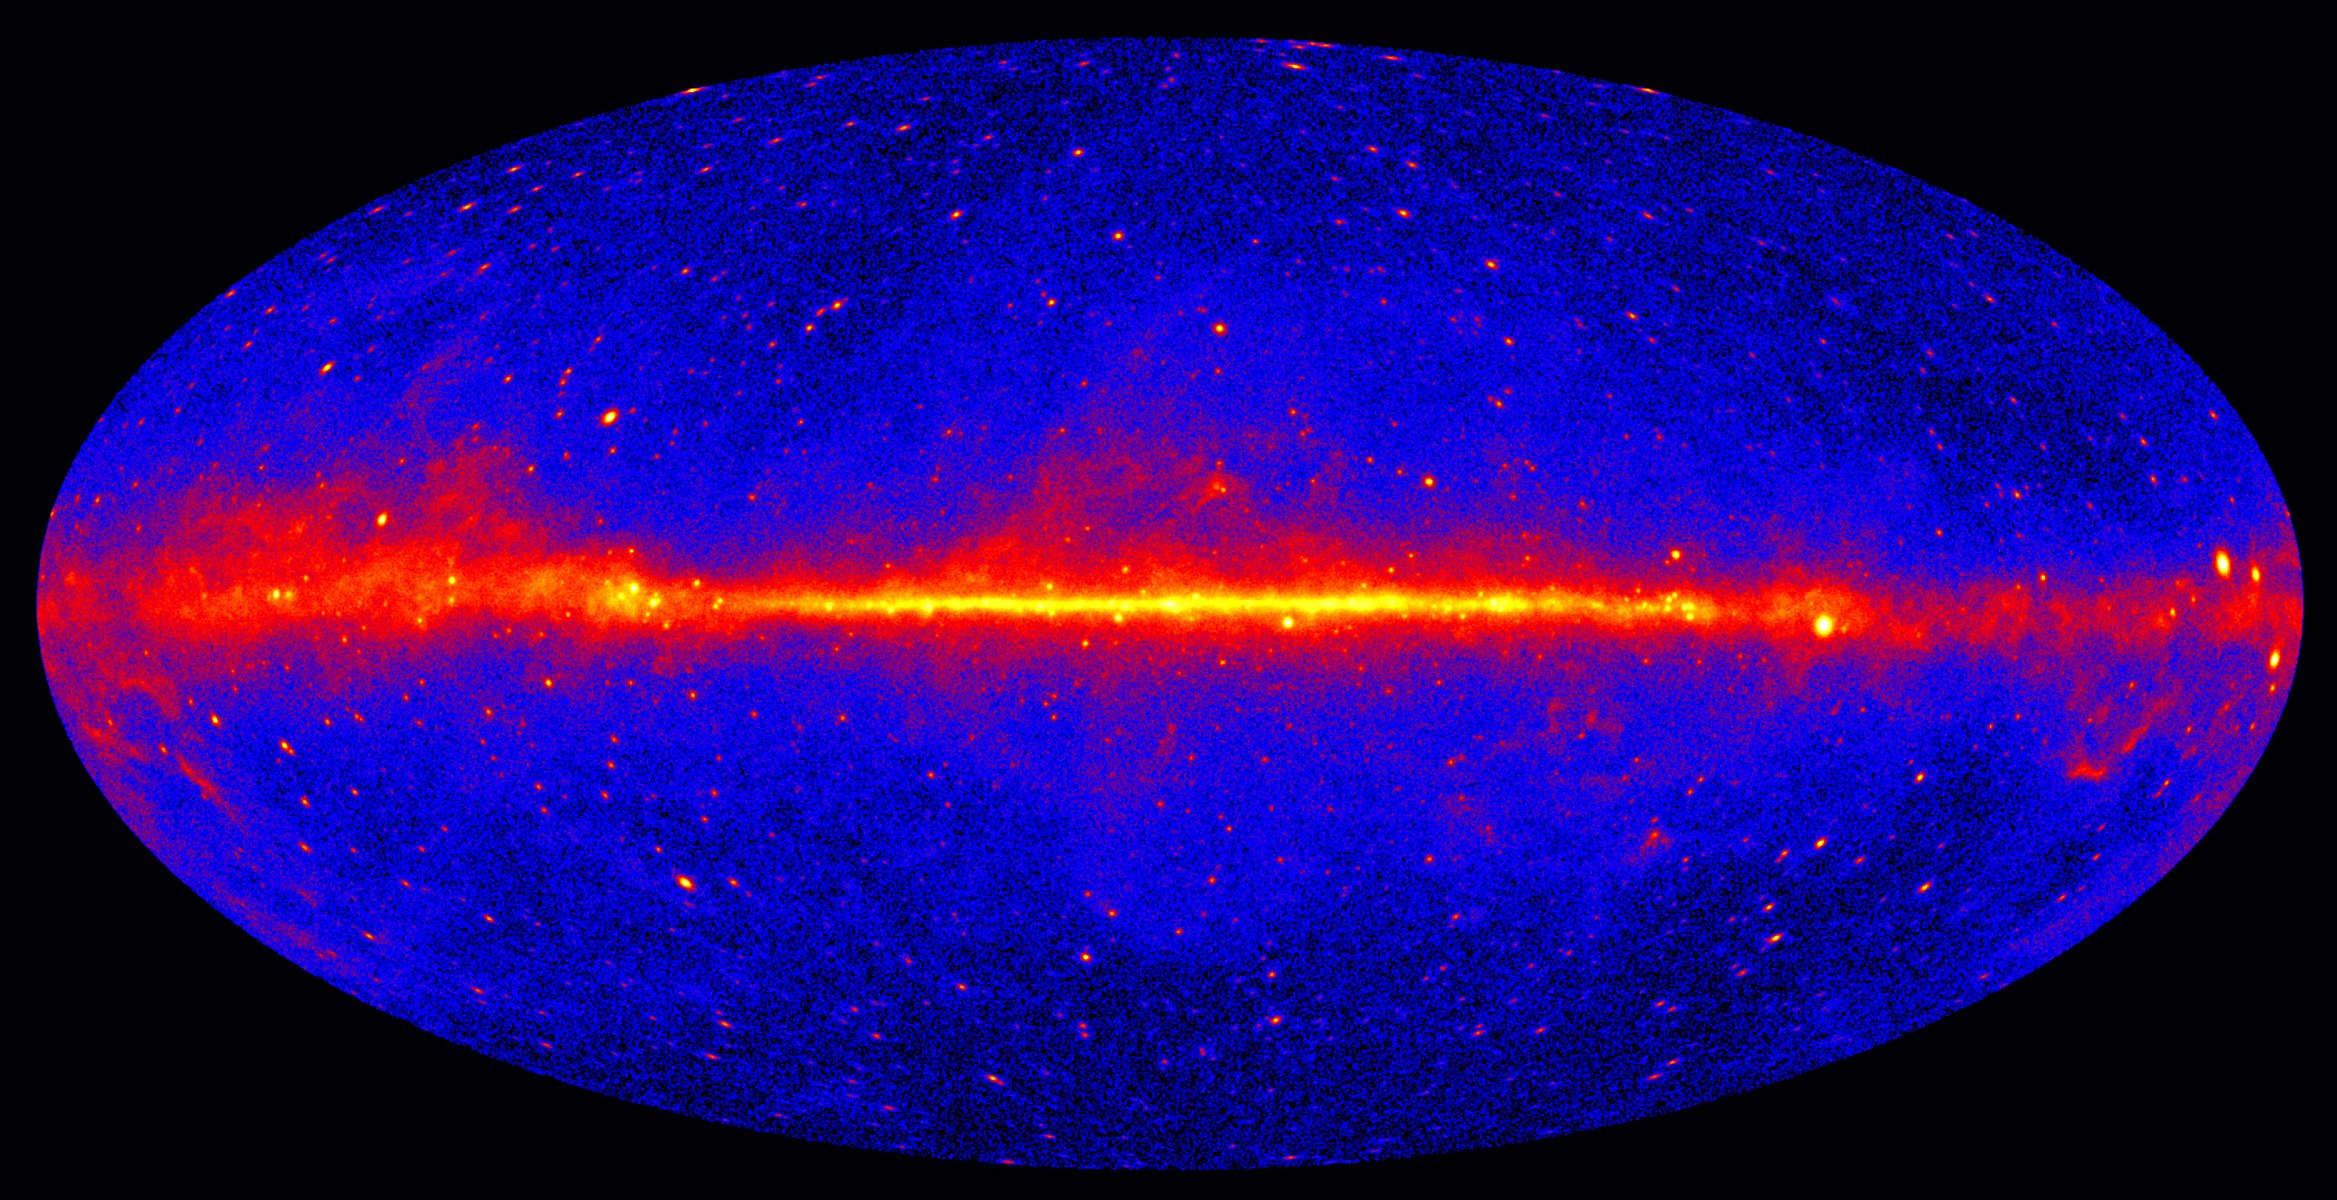 Fermi Gamma-ray Space Telescope Mission expands search for Dark Matter